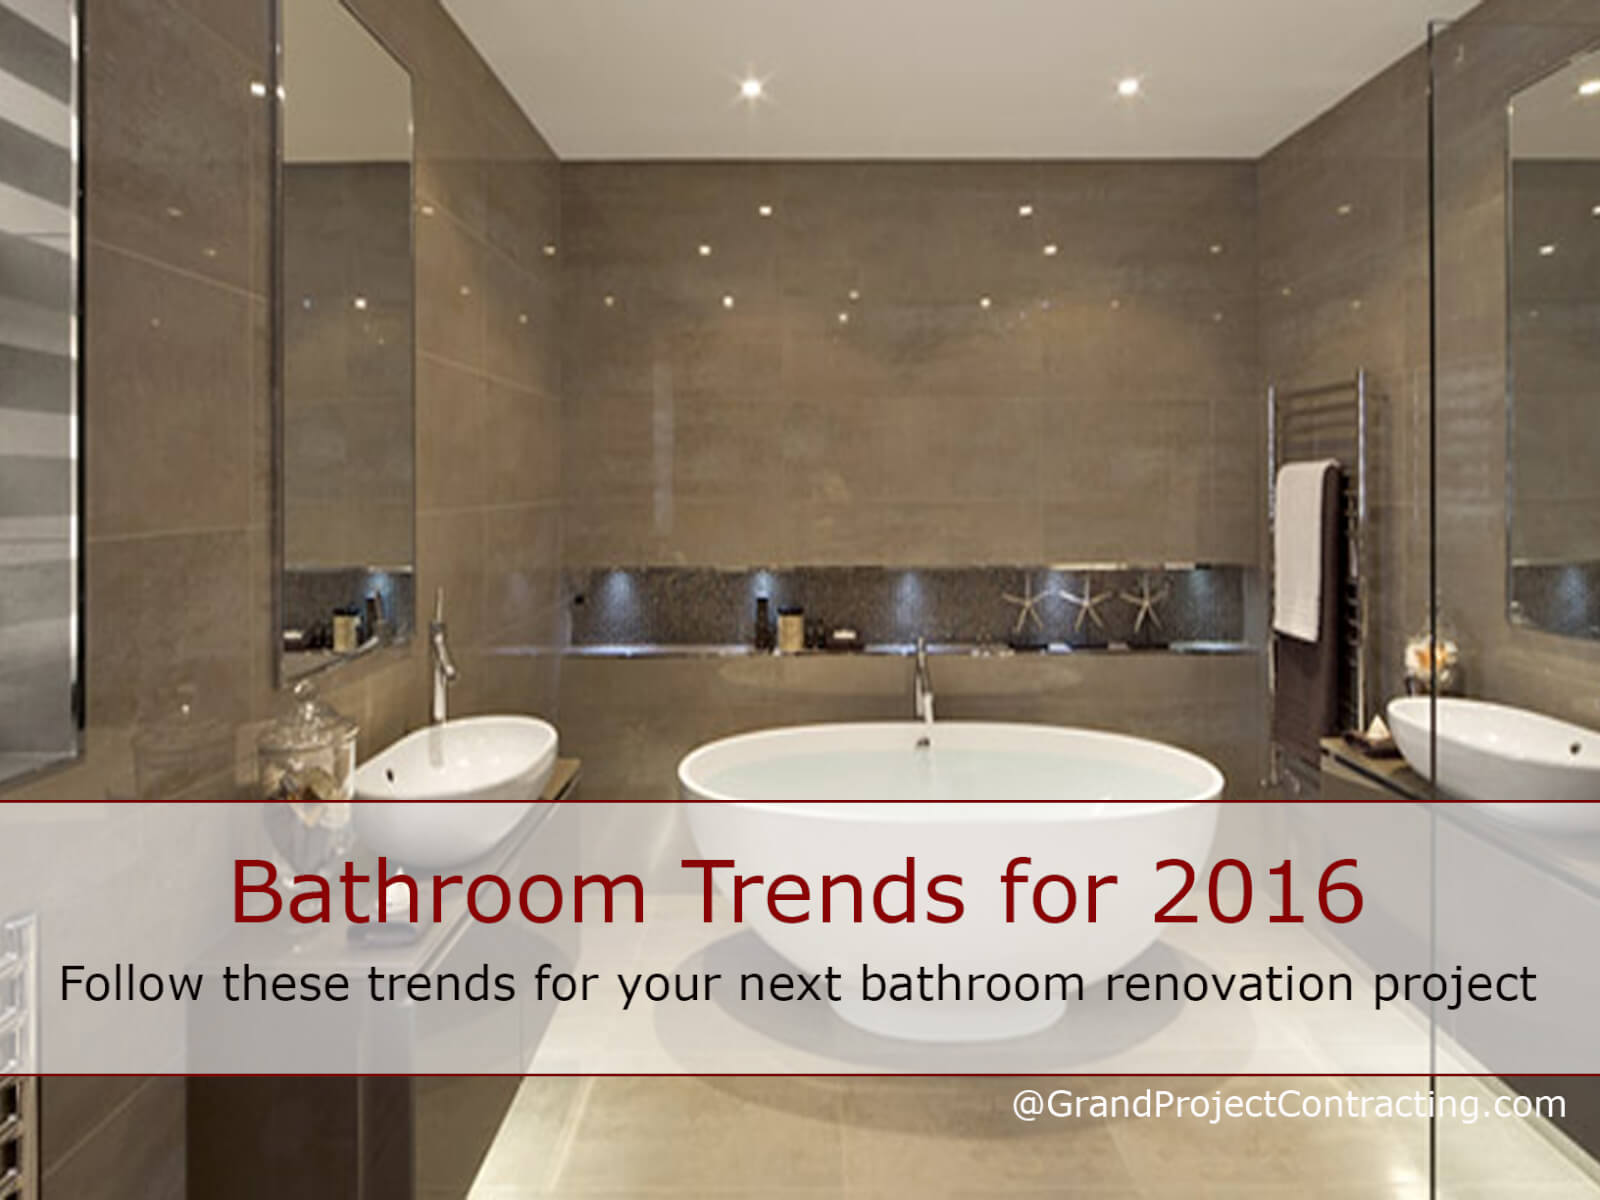 Bathroom trends for 2016 bathroom renovation contractor for Bath trends 2016